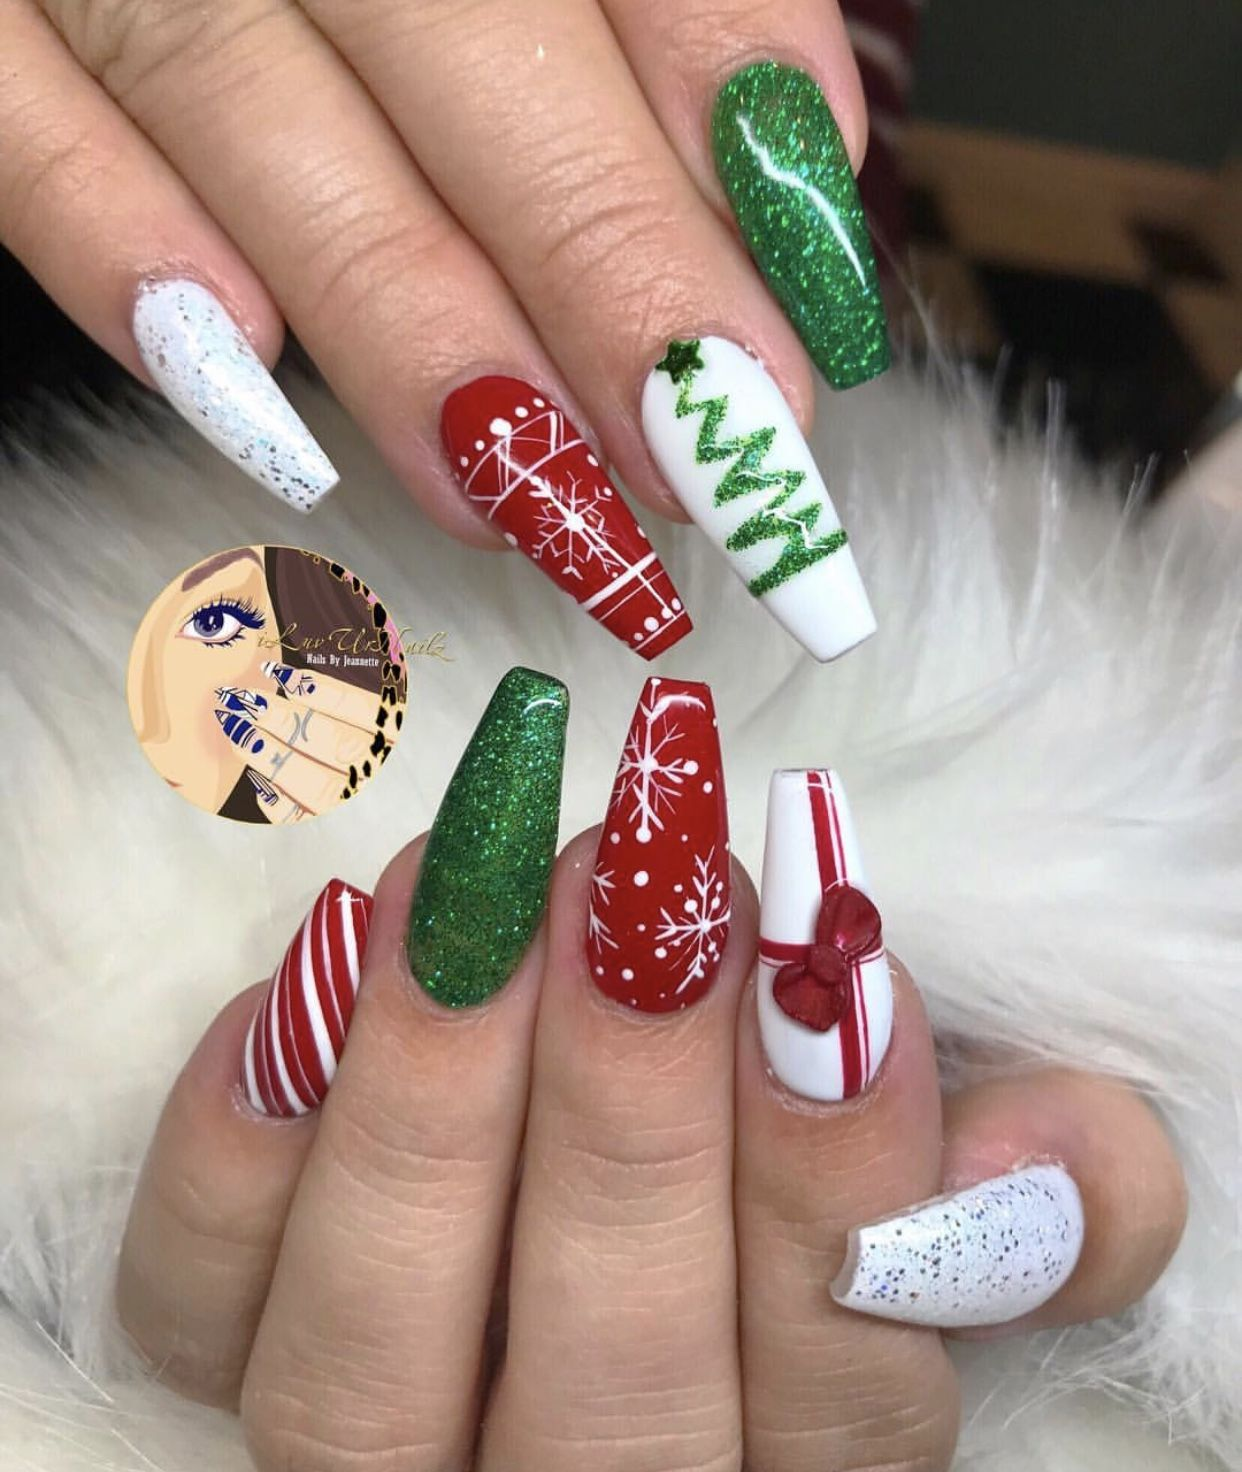 Pin by Heather Nicole on Nails Cute christmas nails, Red